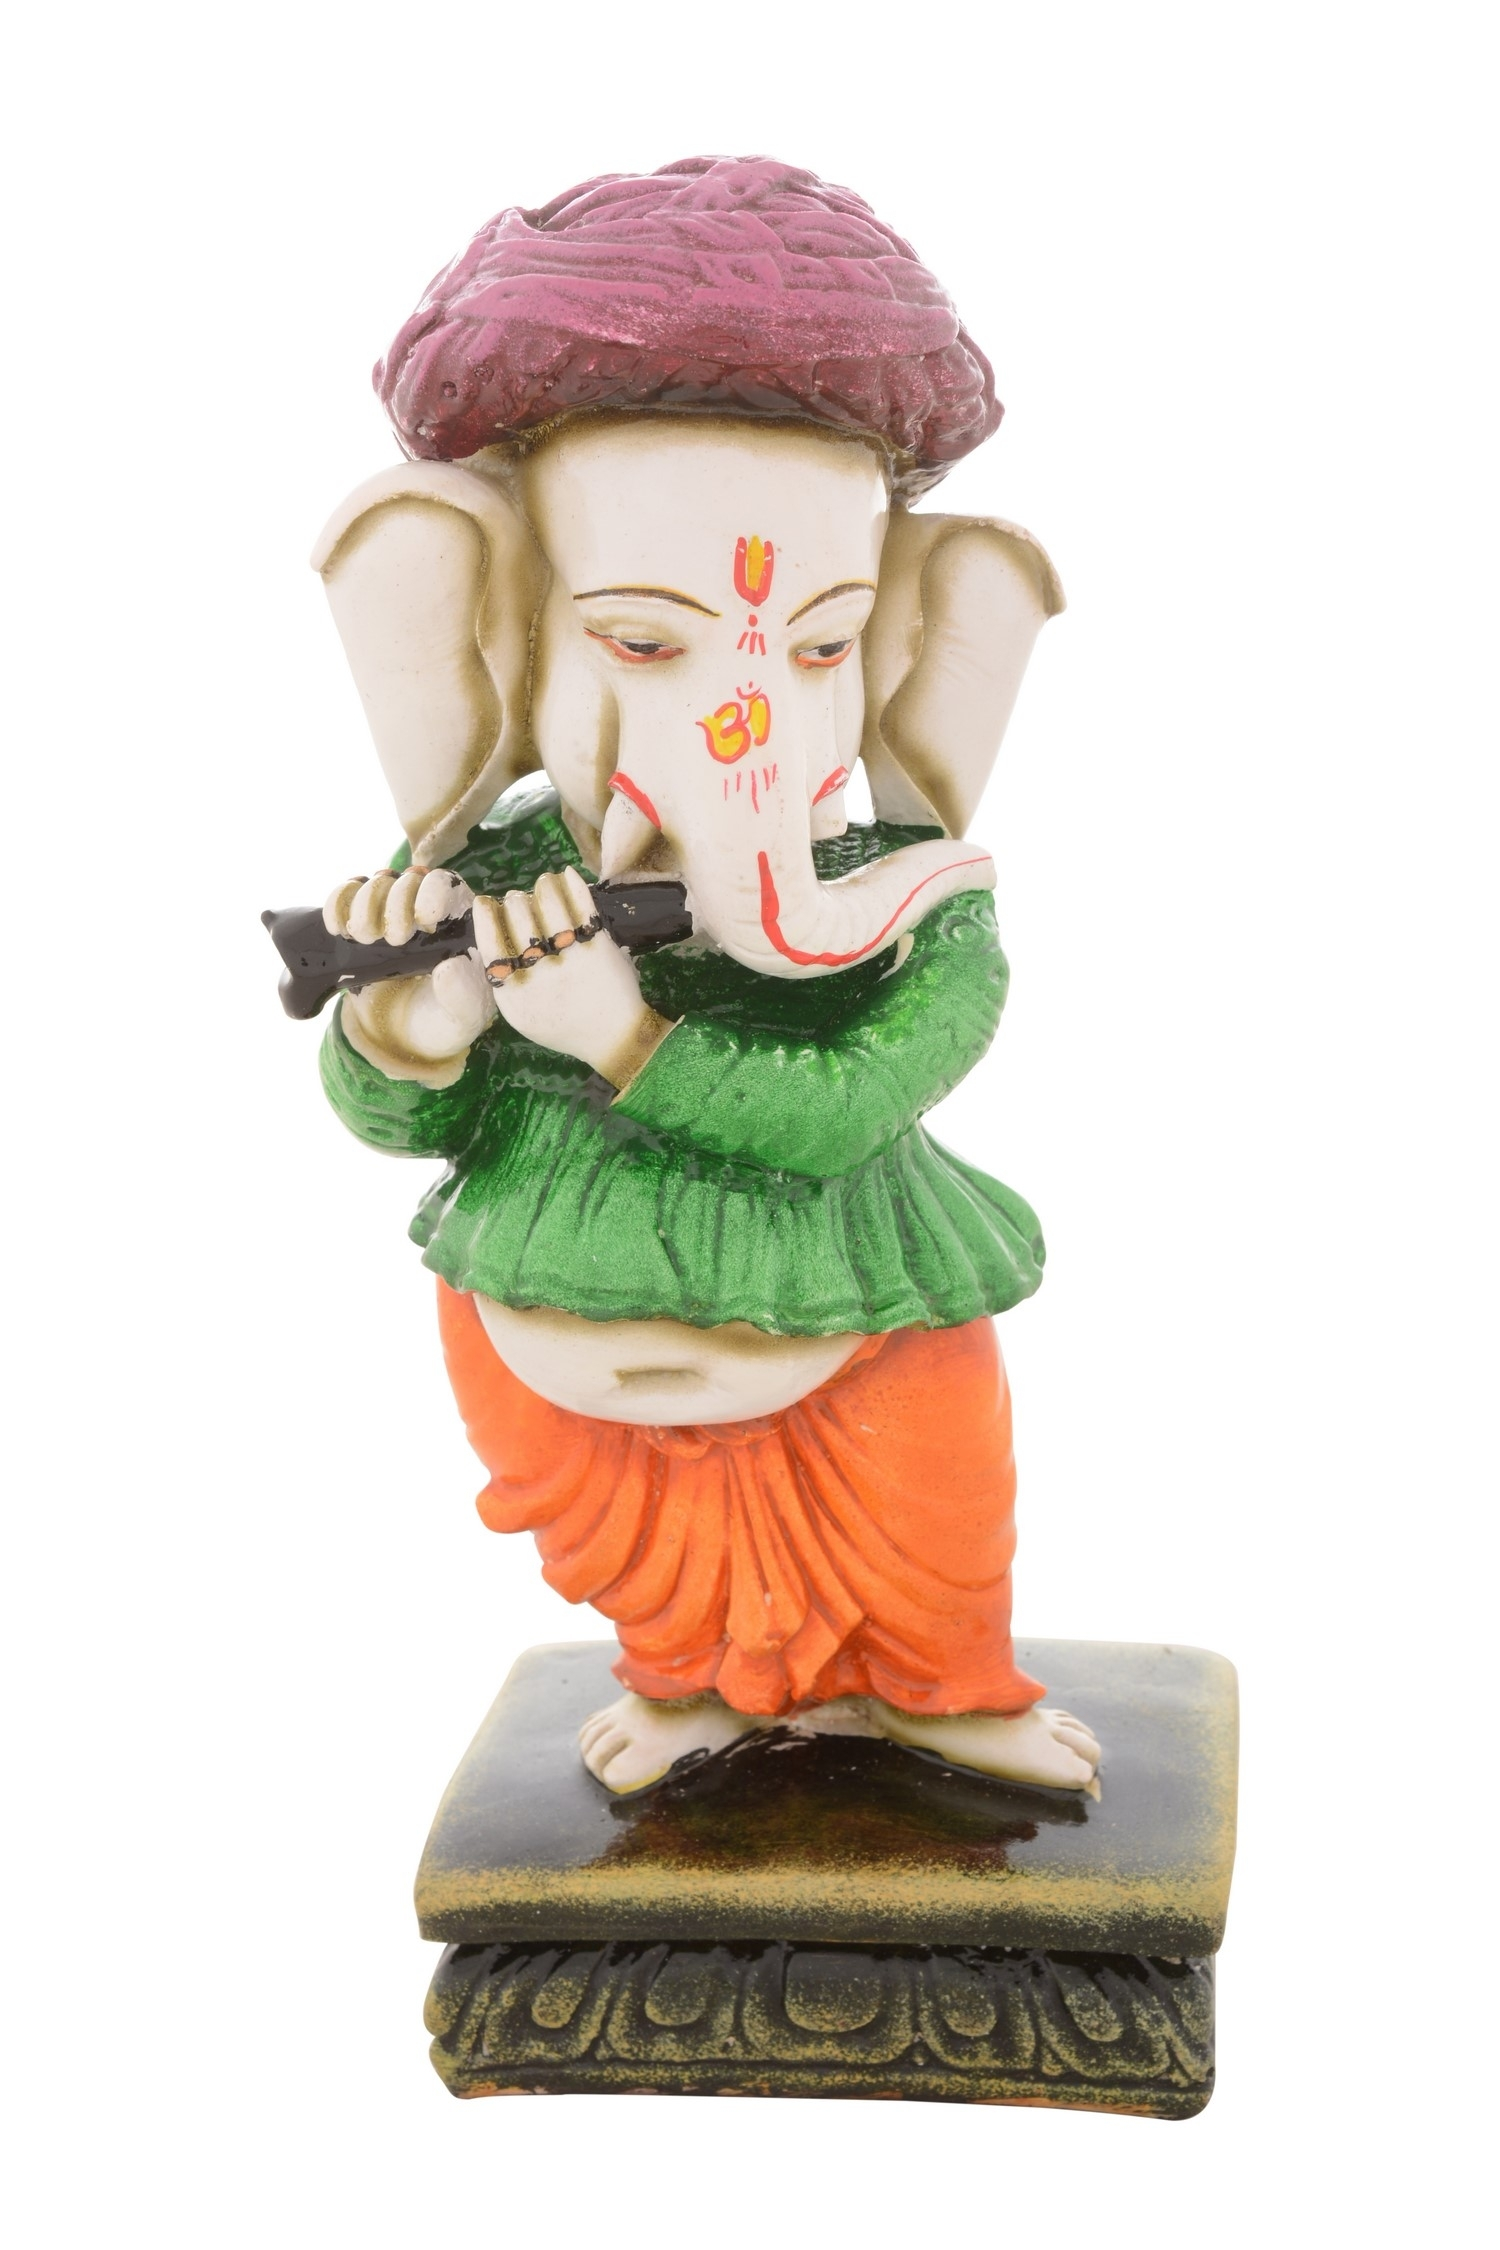 Premium Figurine of Lord Ganesha playing Flute Indian Home Decor